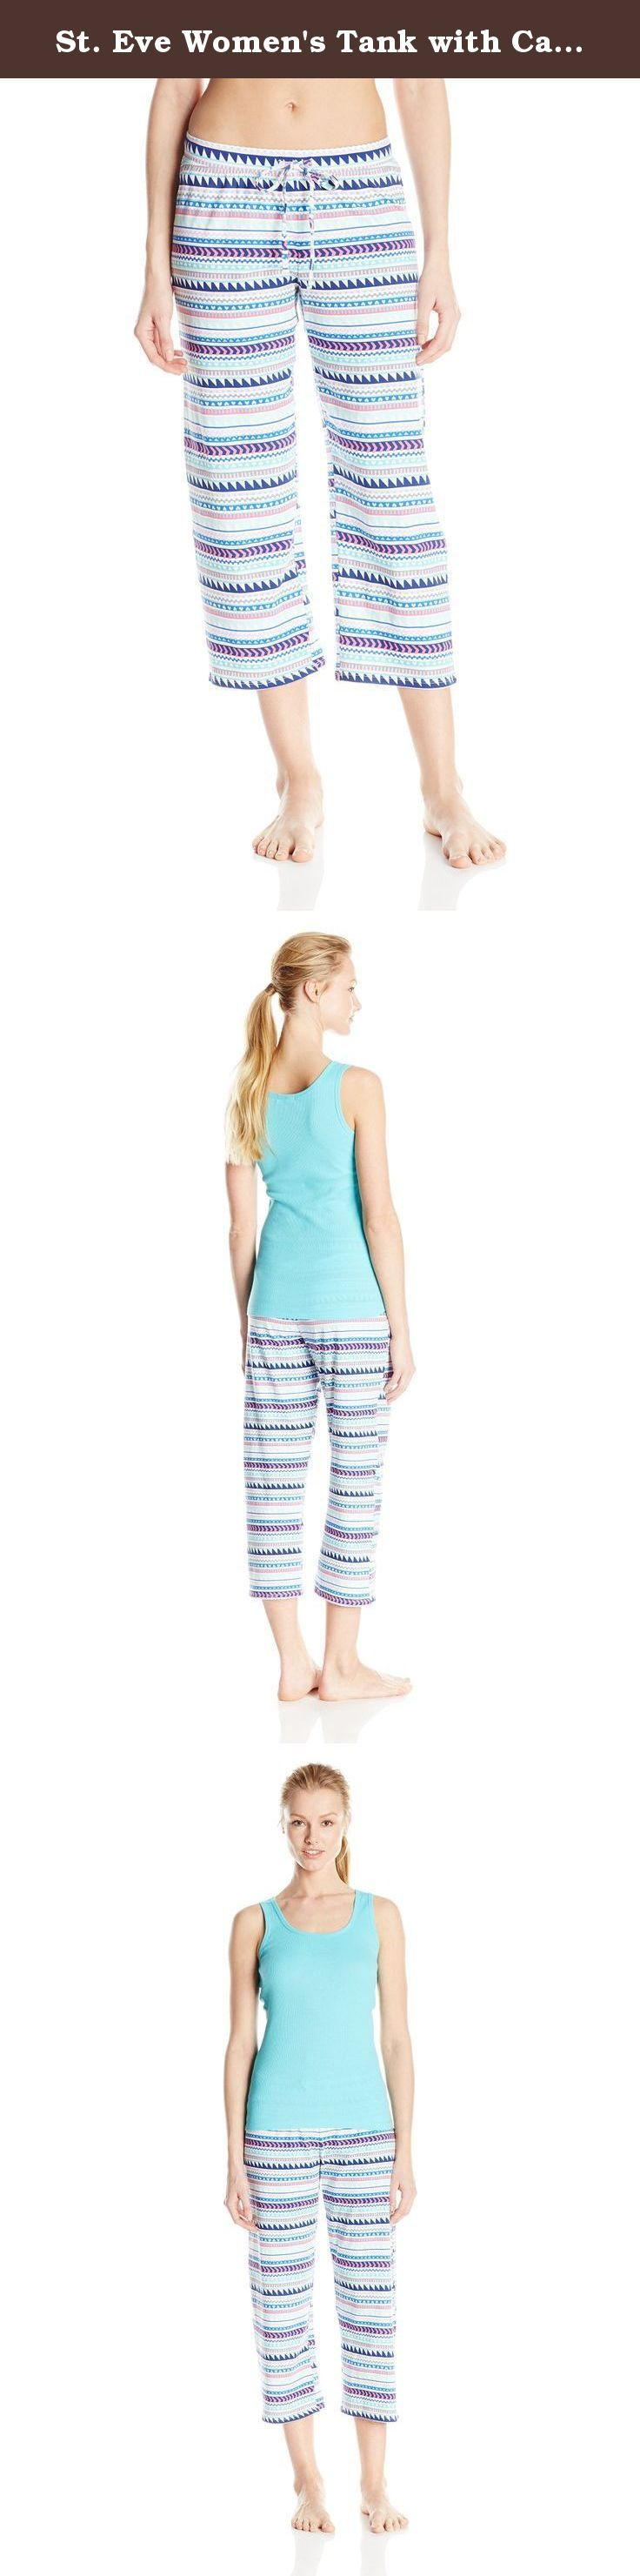 St. Eve Women's Tank with Capri Pant Pajama Set, Blue, Medium. Comfortable and colorful, the St eve tank and capri pajama set is perfect from day to night.